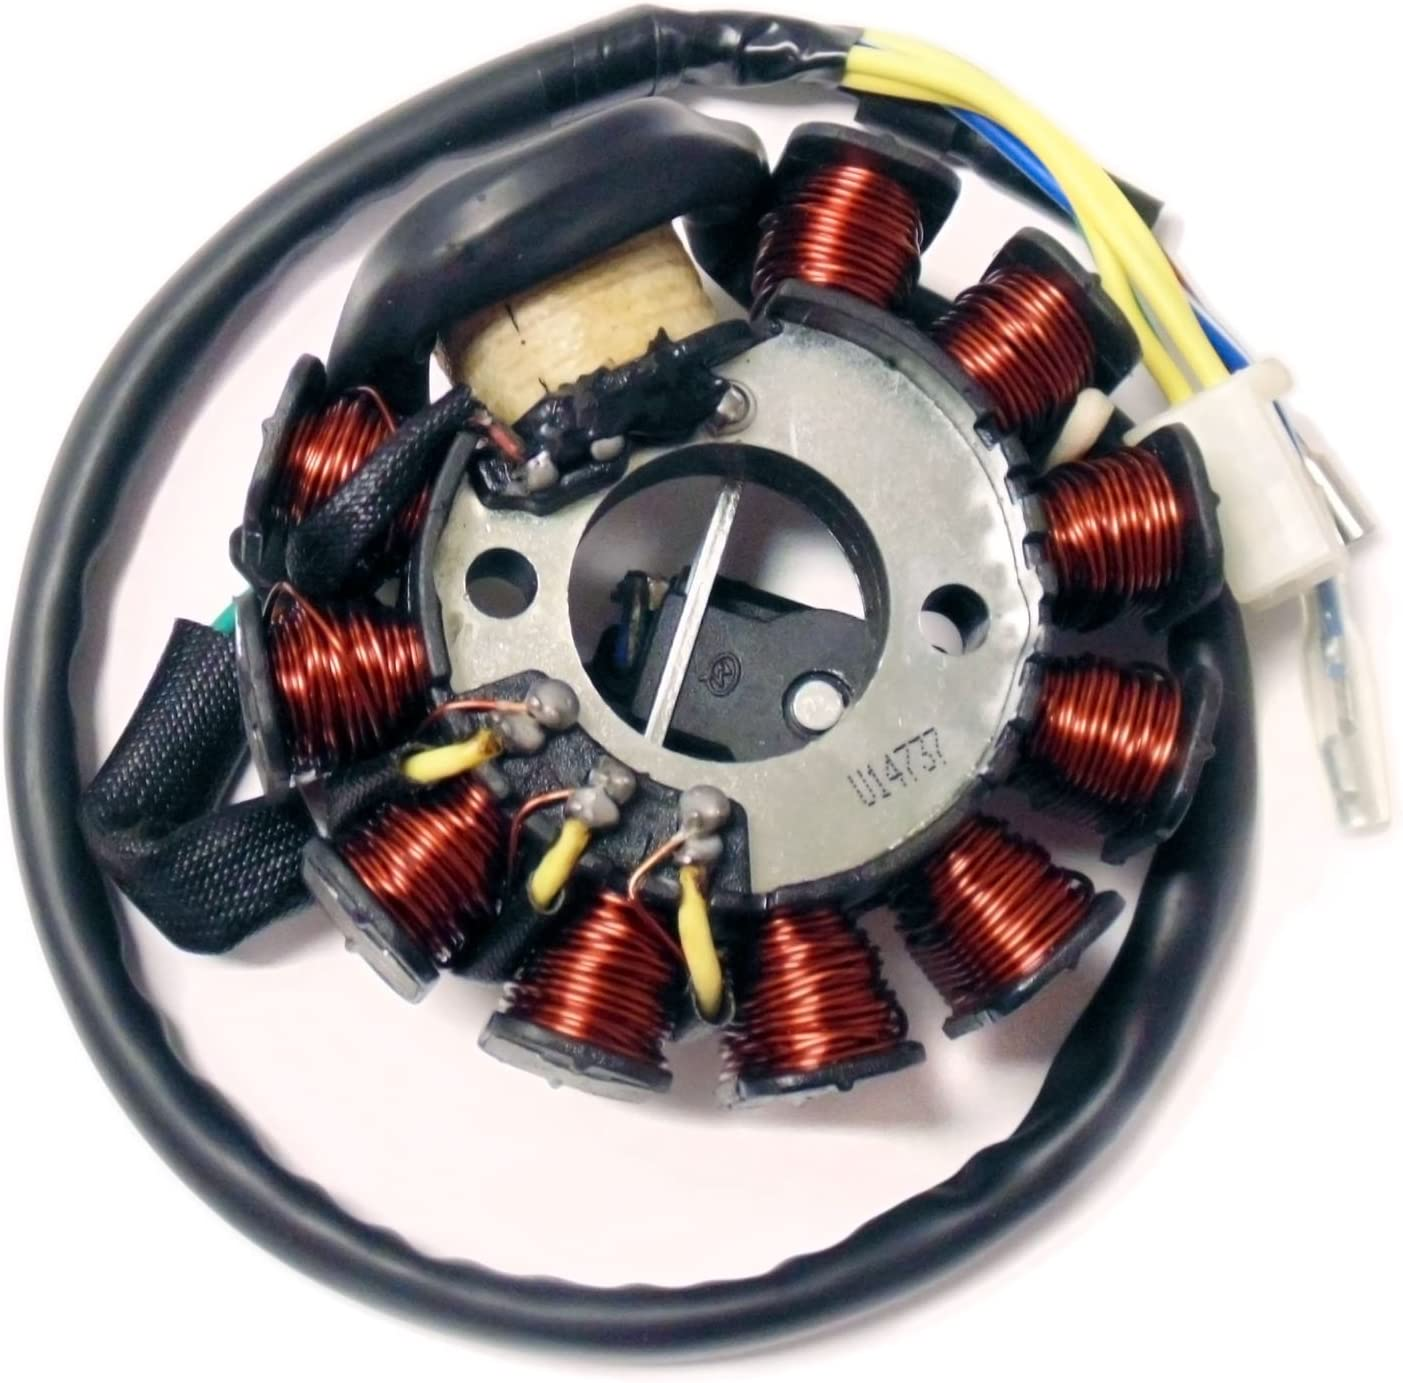 WFLNHB 11 Pole//Coils Magneto Stator Fit for GY6 125CC 150CC Engines